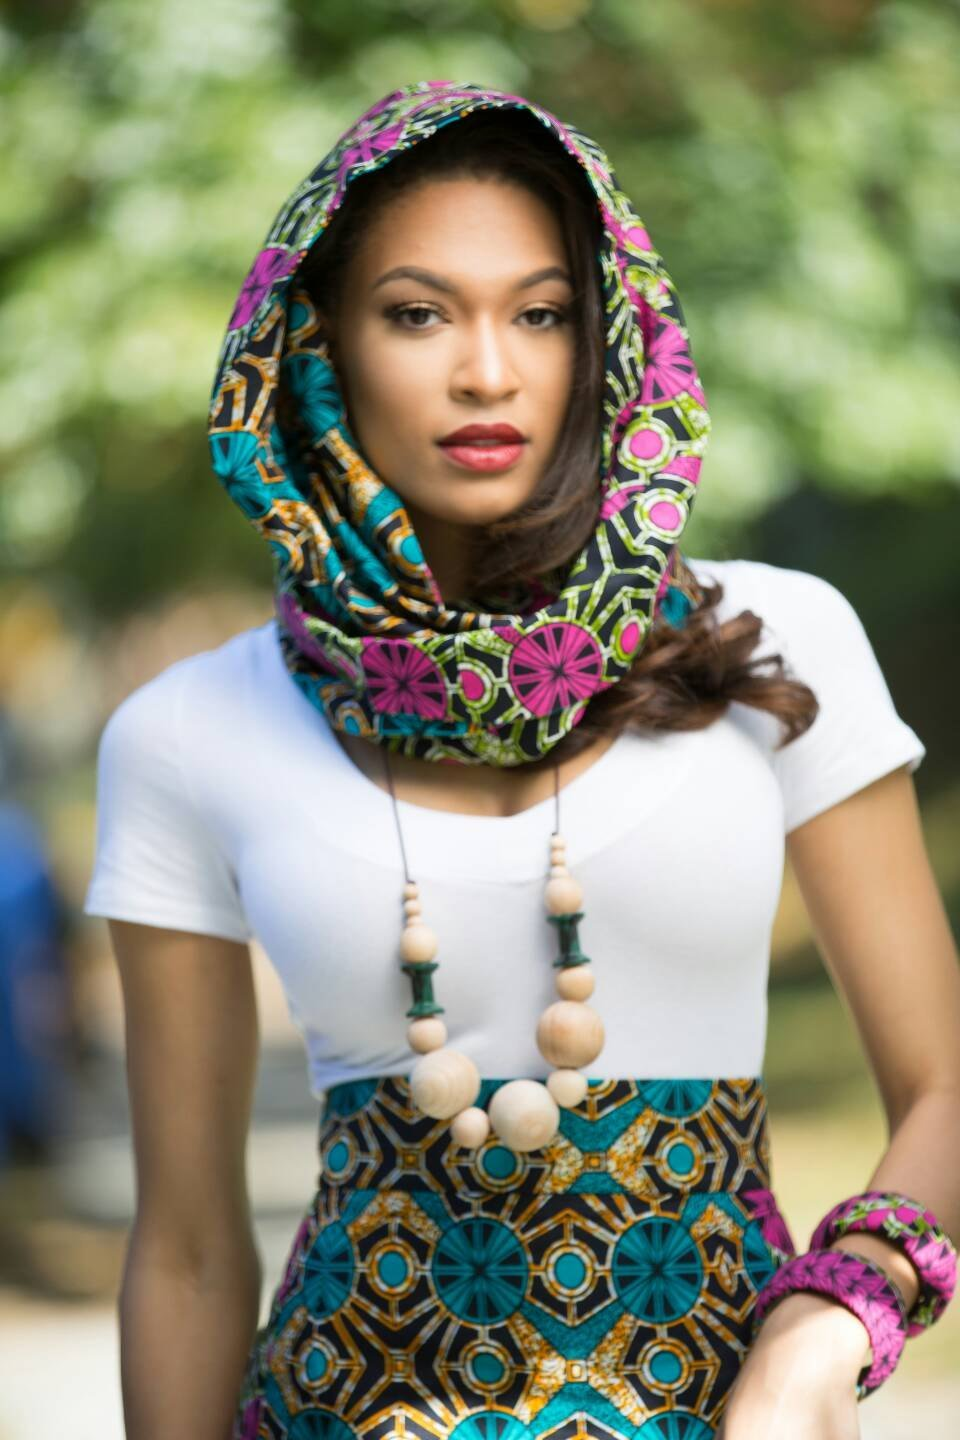 Amazon.com: Infinity scarf, African print scarf,Infinity scarves ...